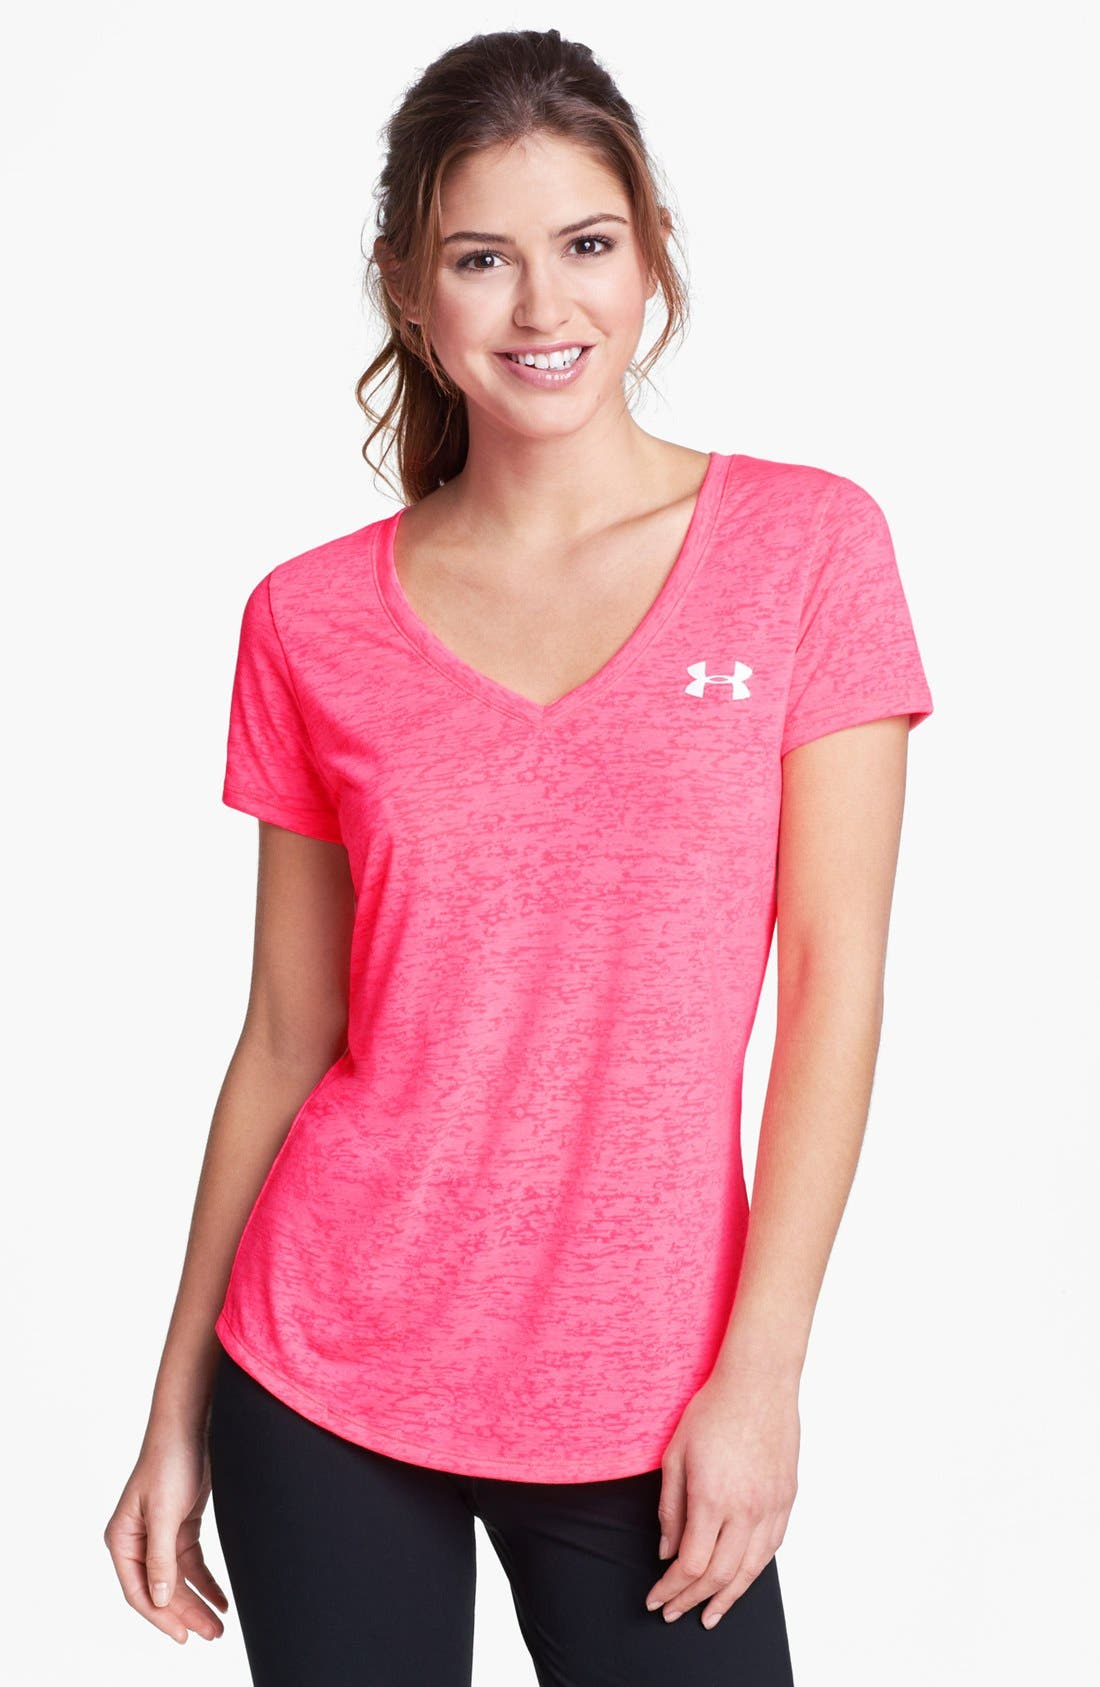 Main Image - Under Armour 'Power in Pink Achieve' Tee